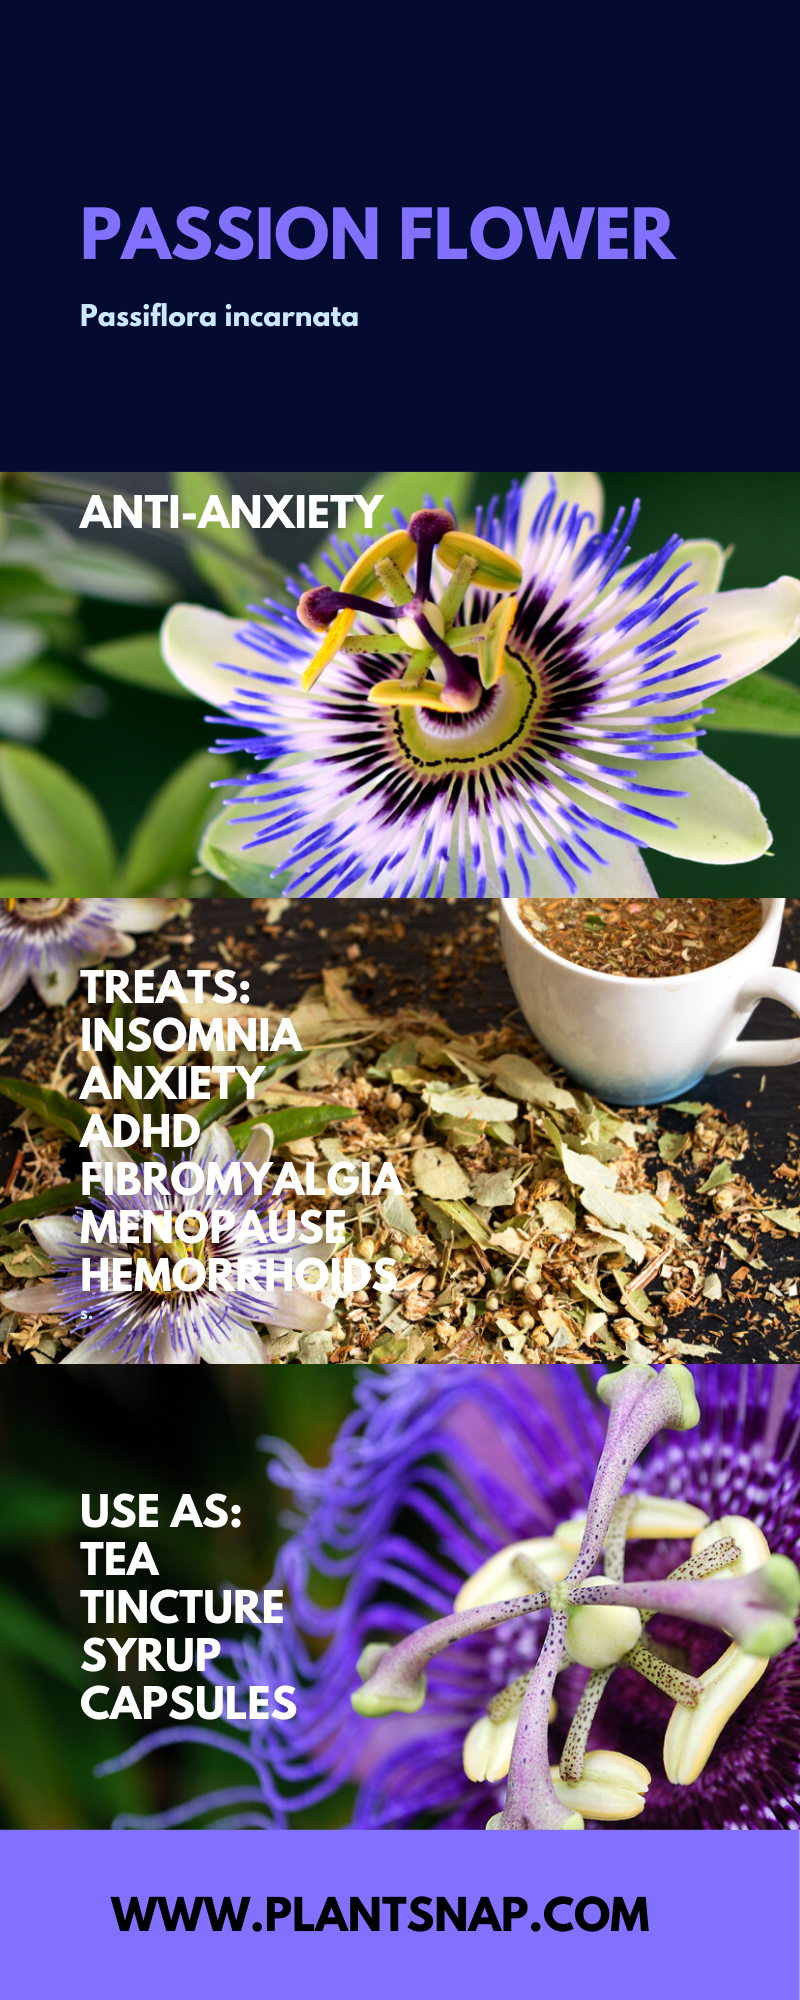 Passion Flower In 2020 Passion Flower Identify Plant Plant Identification